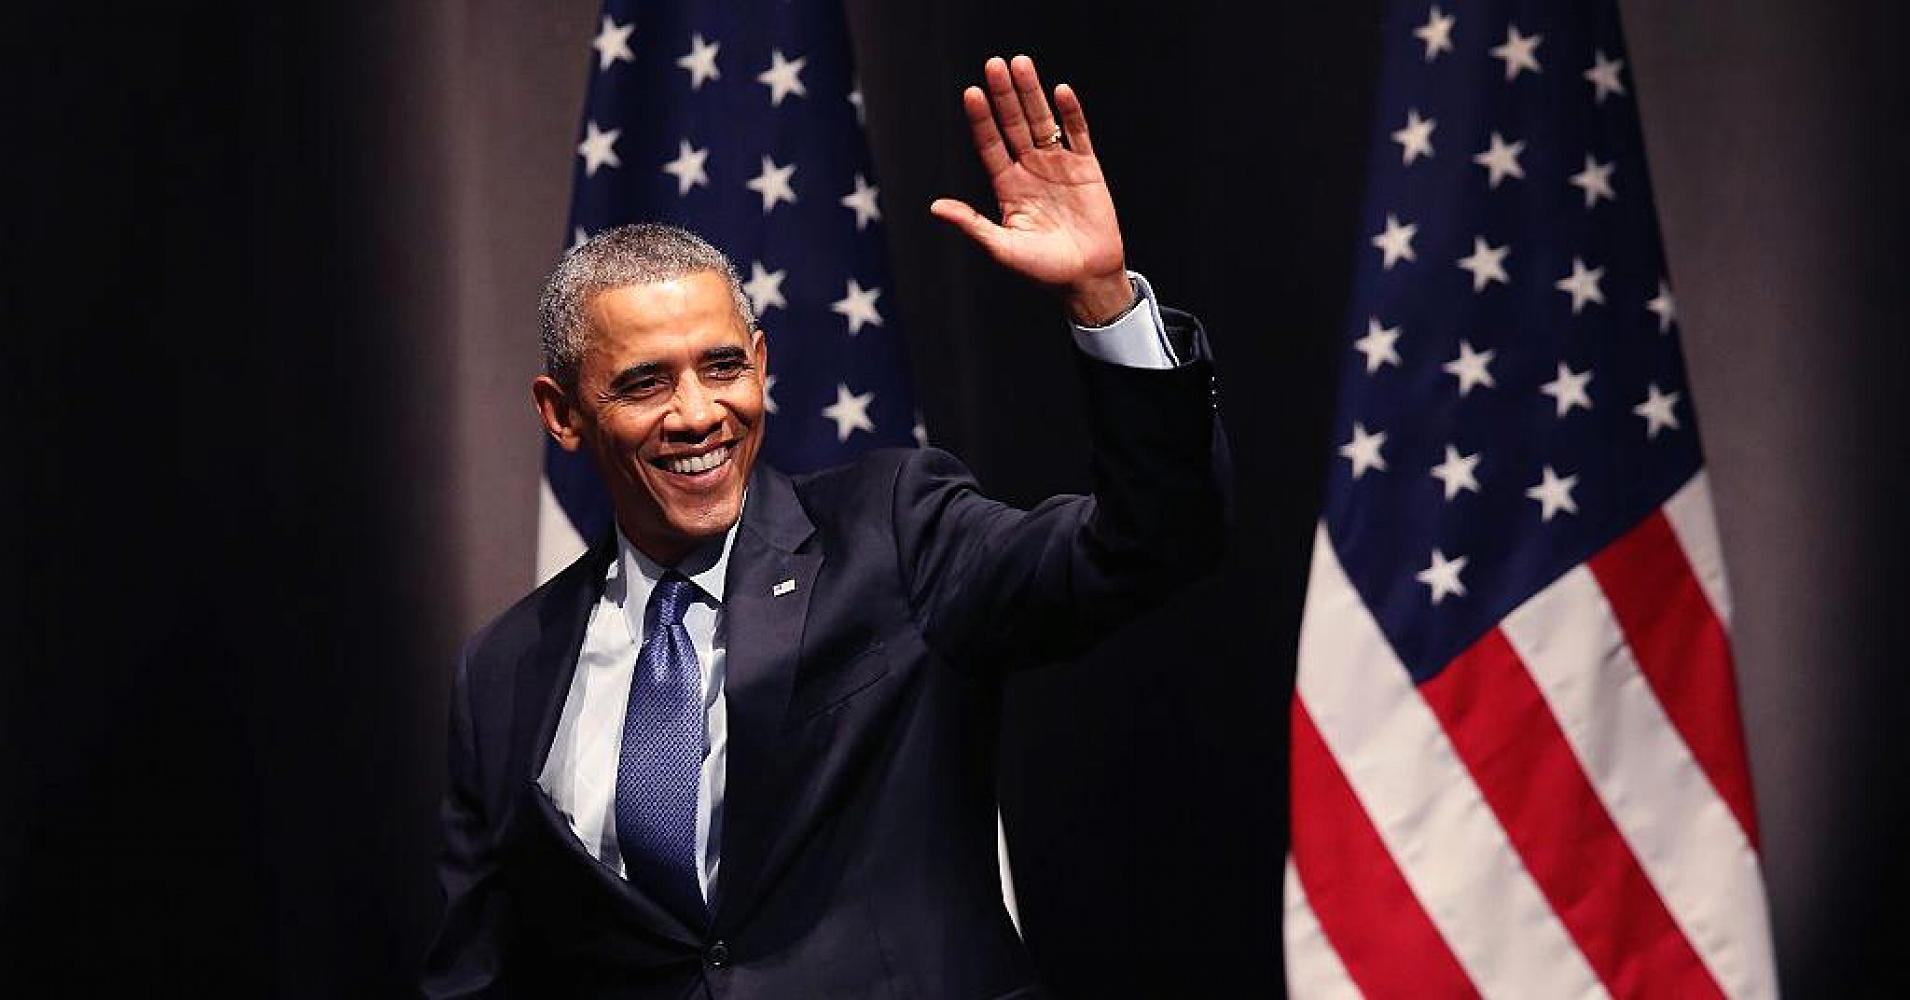 thesis written by barack obama The audacity of hope: thoughts on reclaiming the american dream is the second book written by then-senator barack obama  the book as obama's thesis.